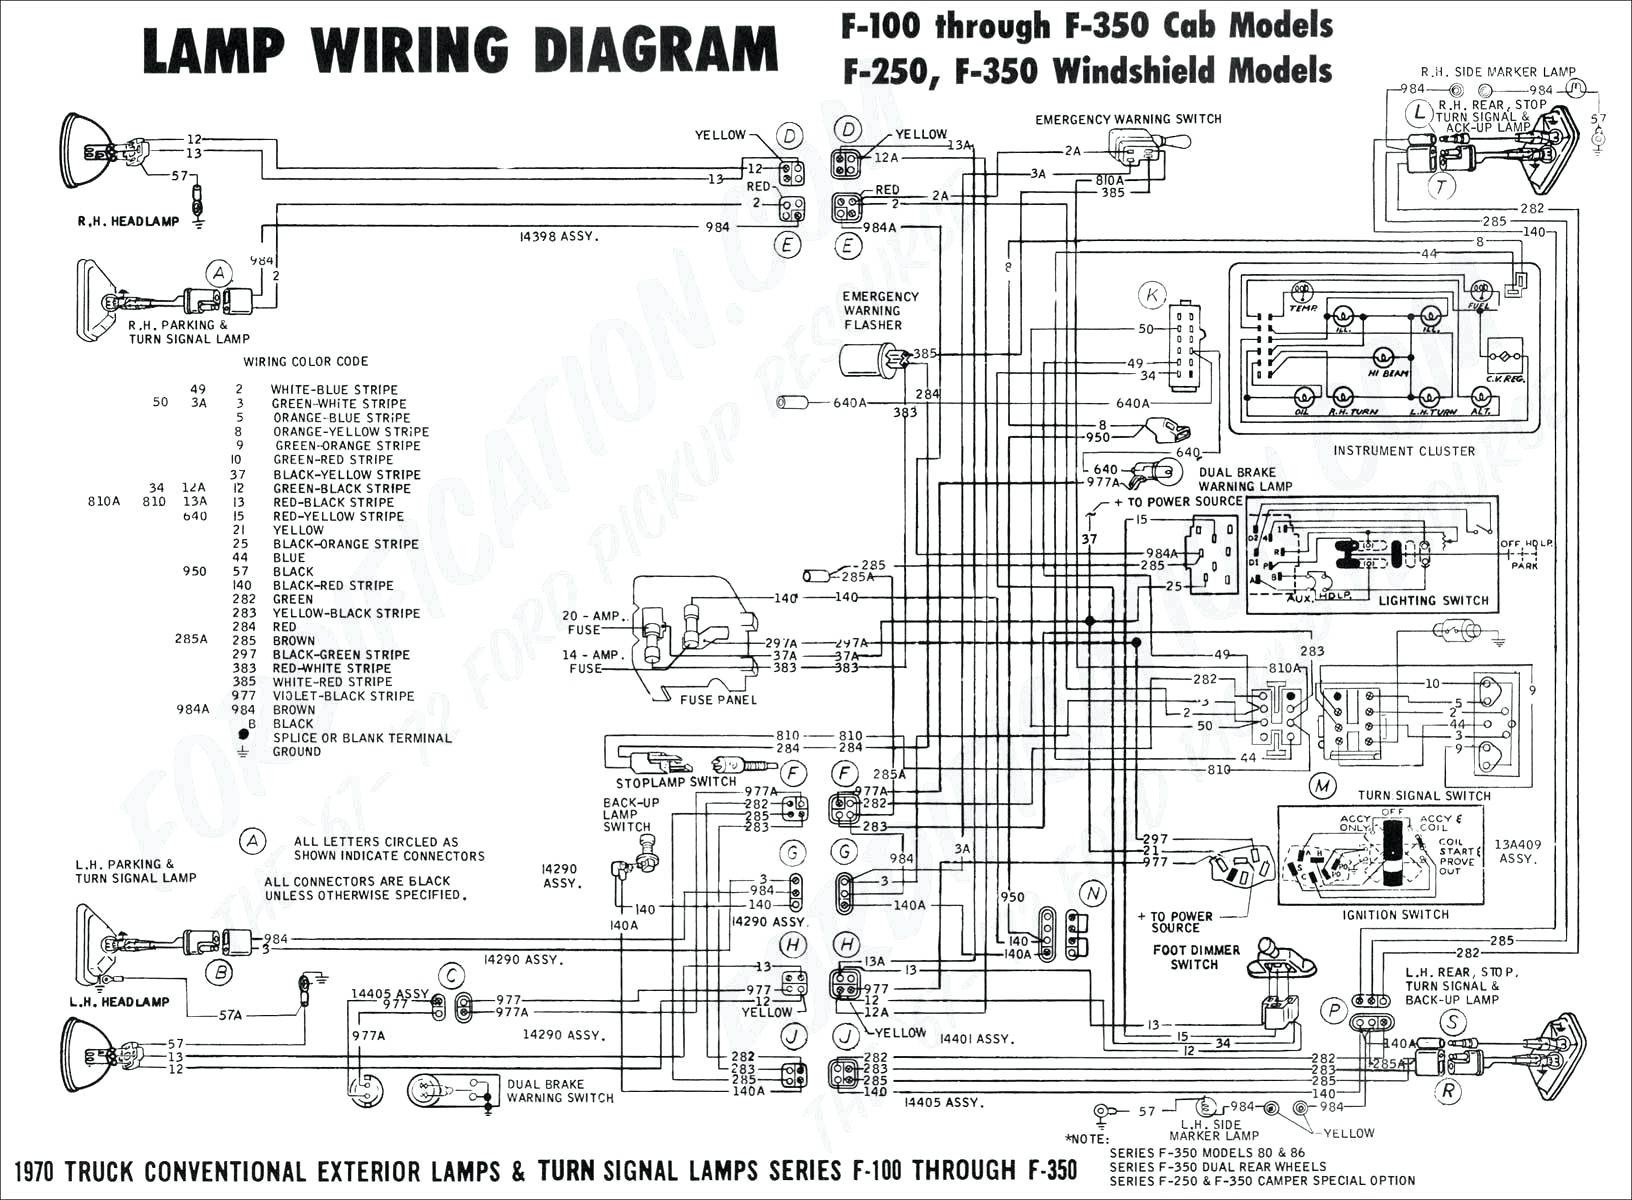 2006 Chevy Equinox Engine Diagram International Scout Ii Wiring Diagram Worksheet and Wiring Diagram • Of 2006 Chevy Equinox Engine Diagram